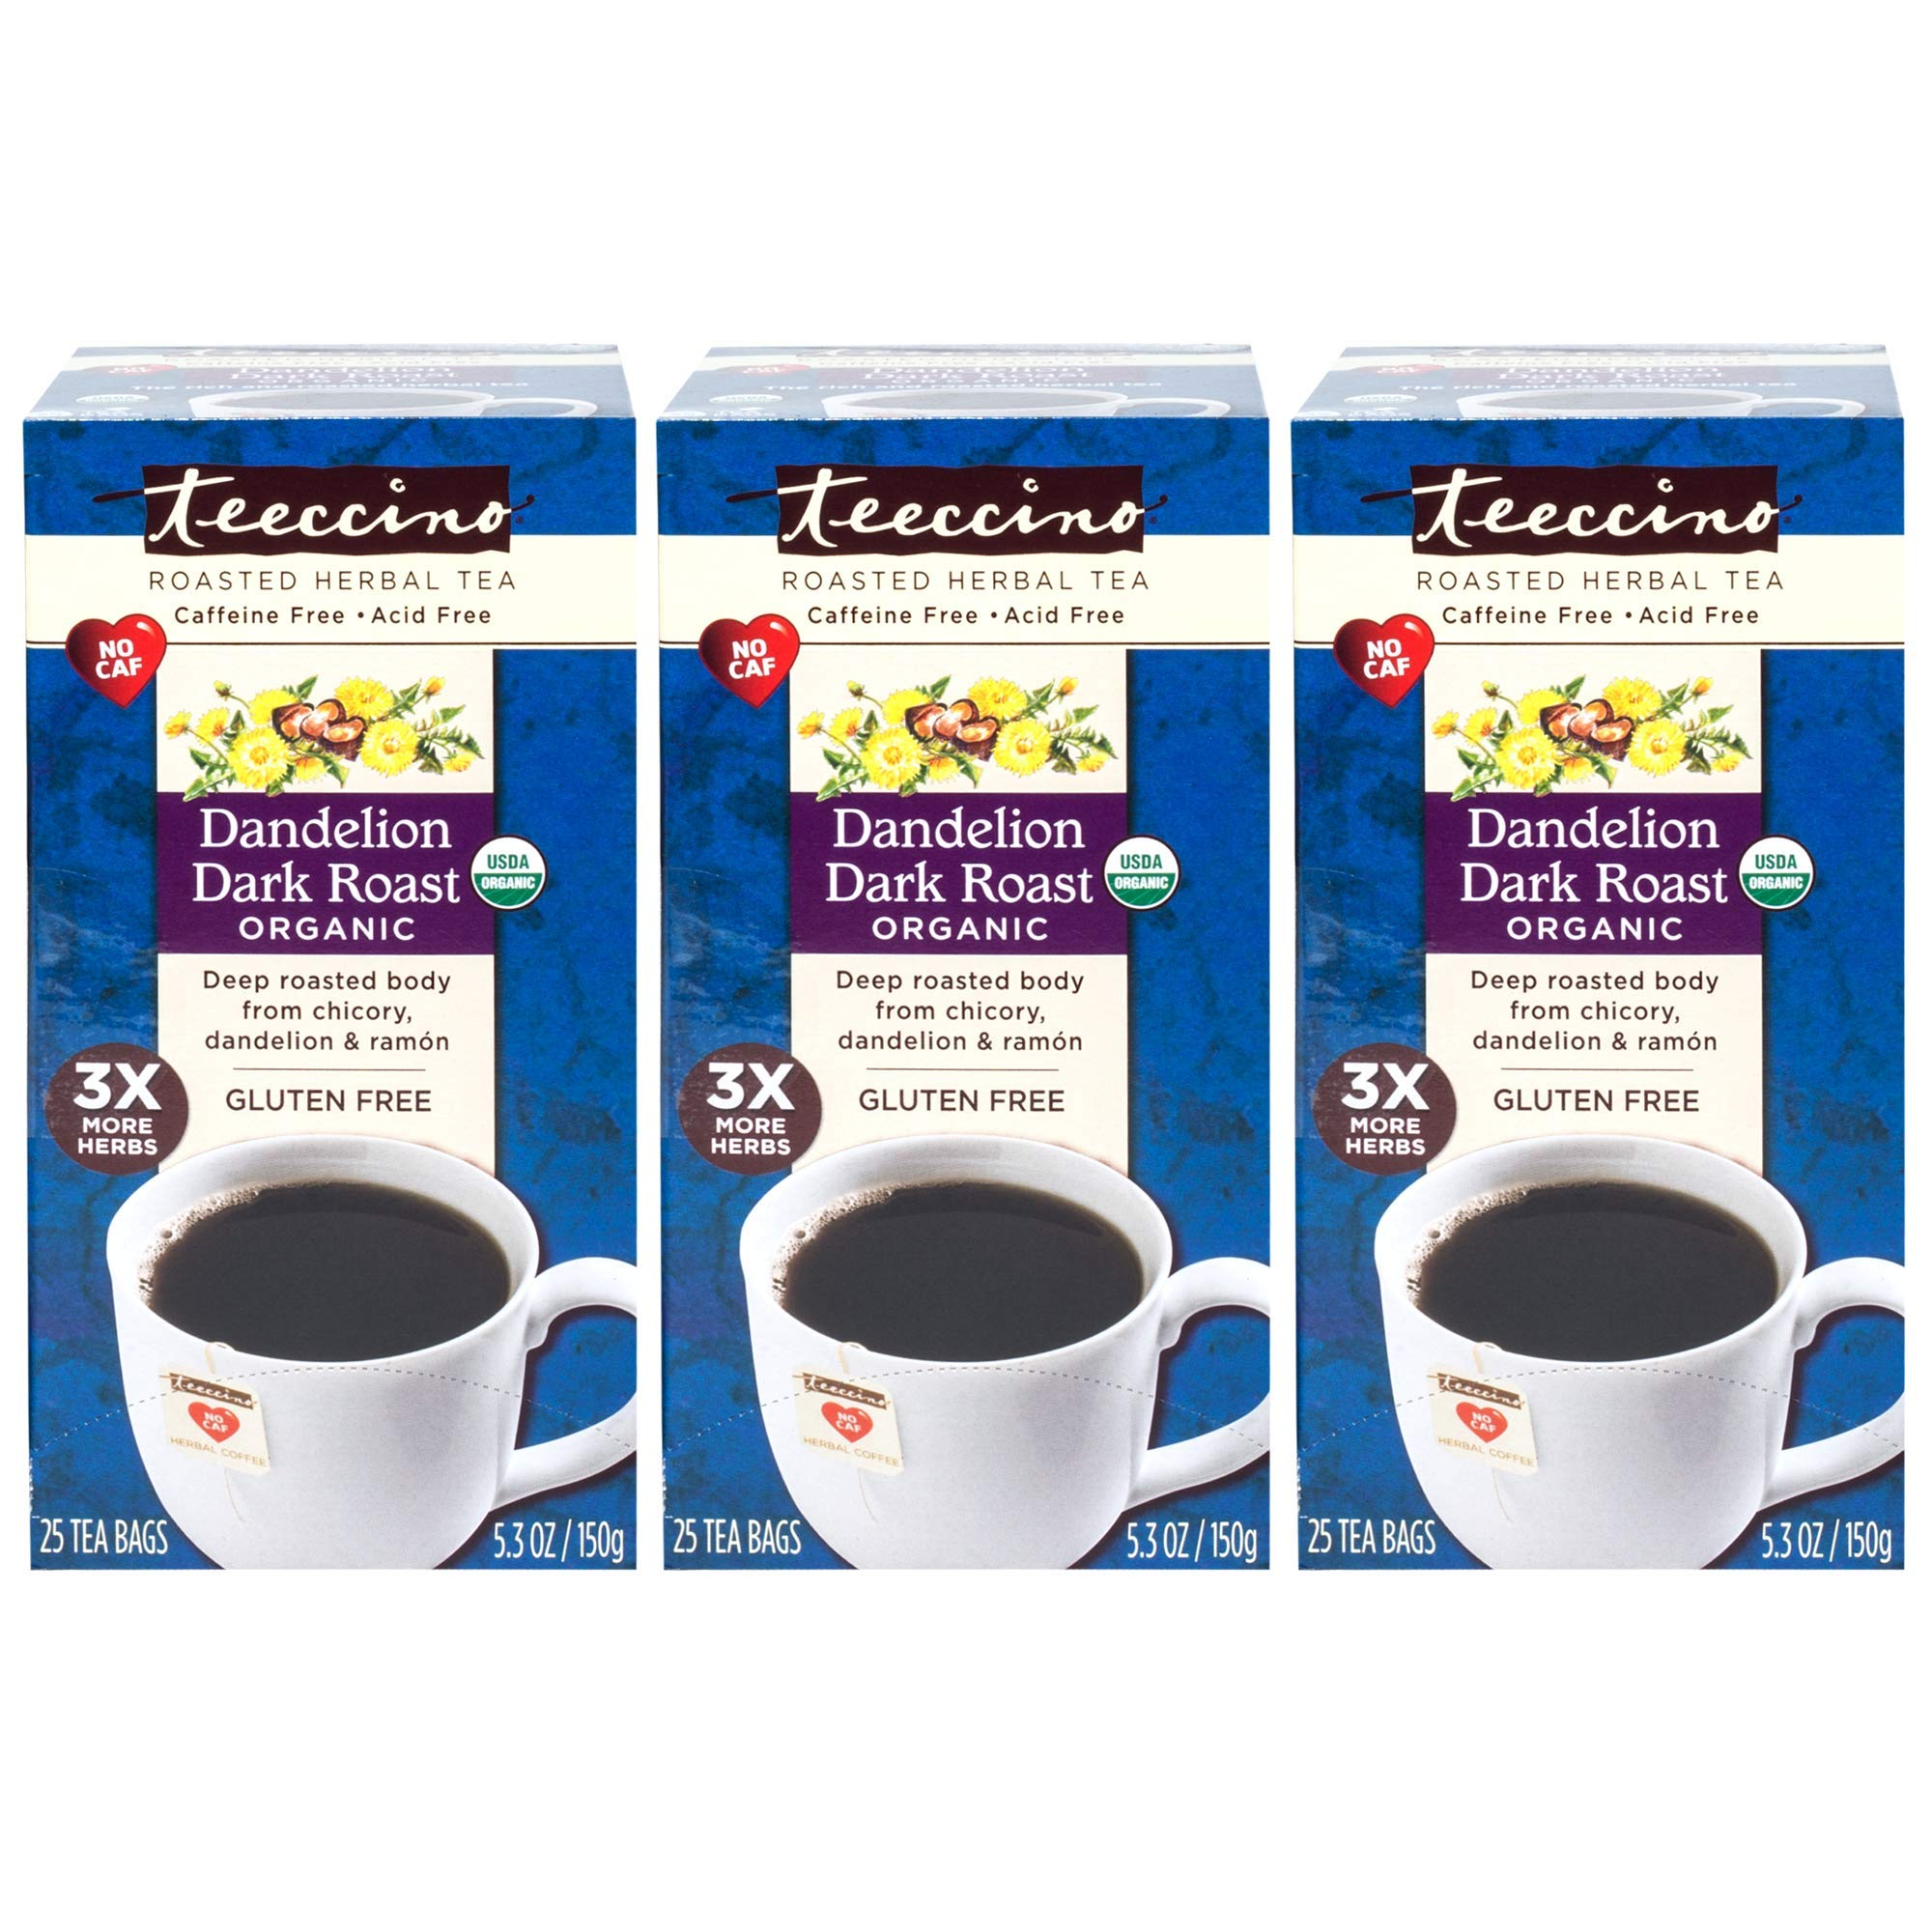 Teeccino Organic Dandelion Dark Roast Chicory Herbal Tea Bags, Gluten Free, Caffeine Free, Acid Free, 25 Count (Pack of 3) by Teeccino